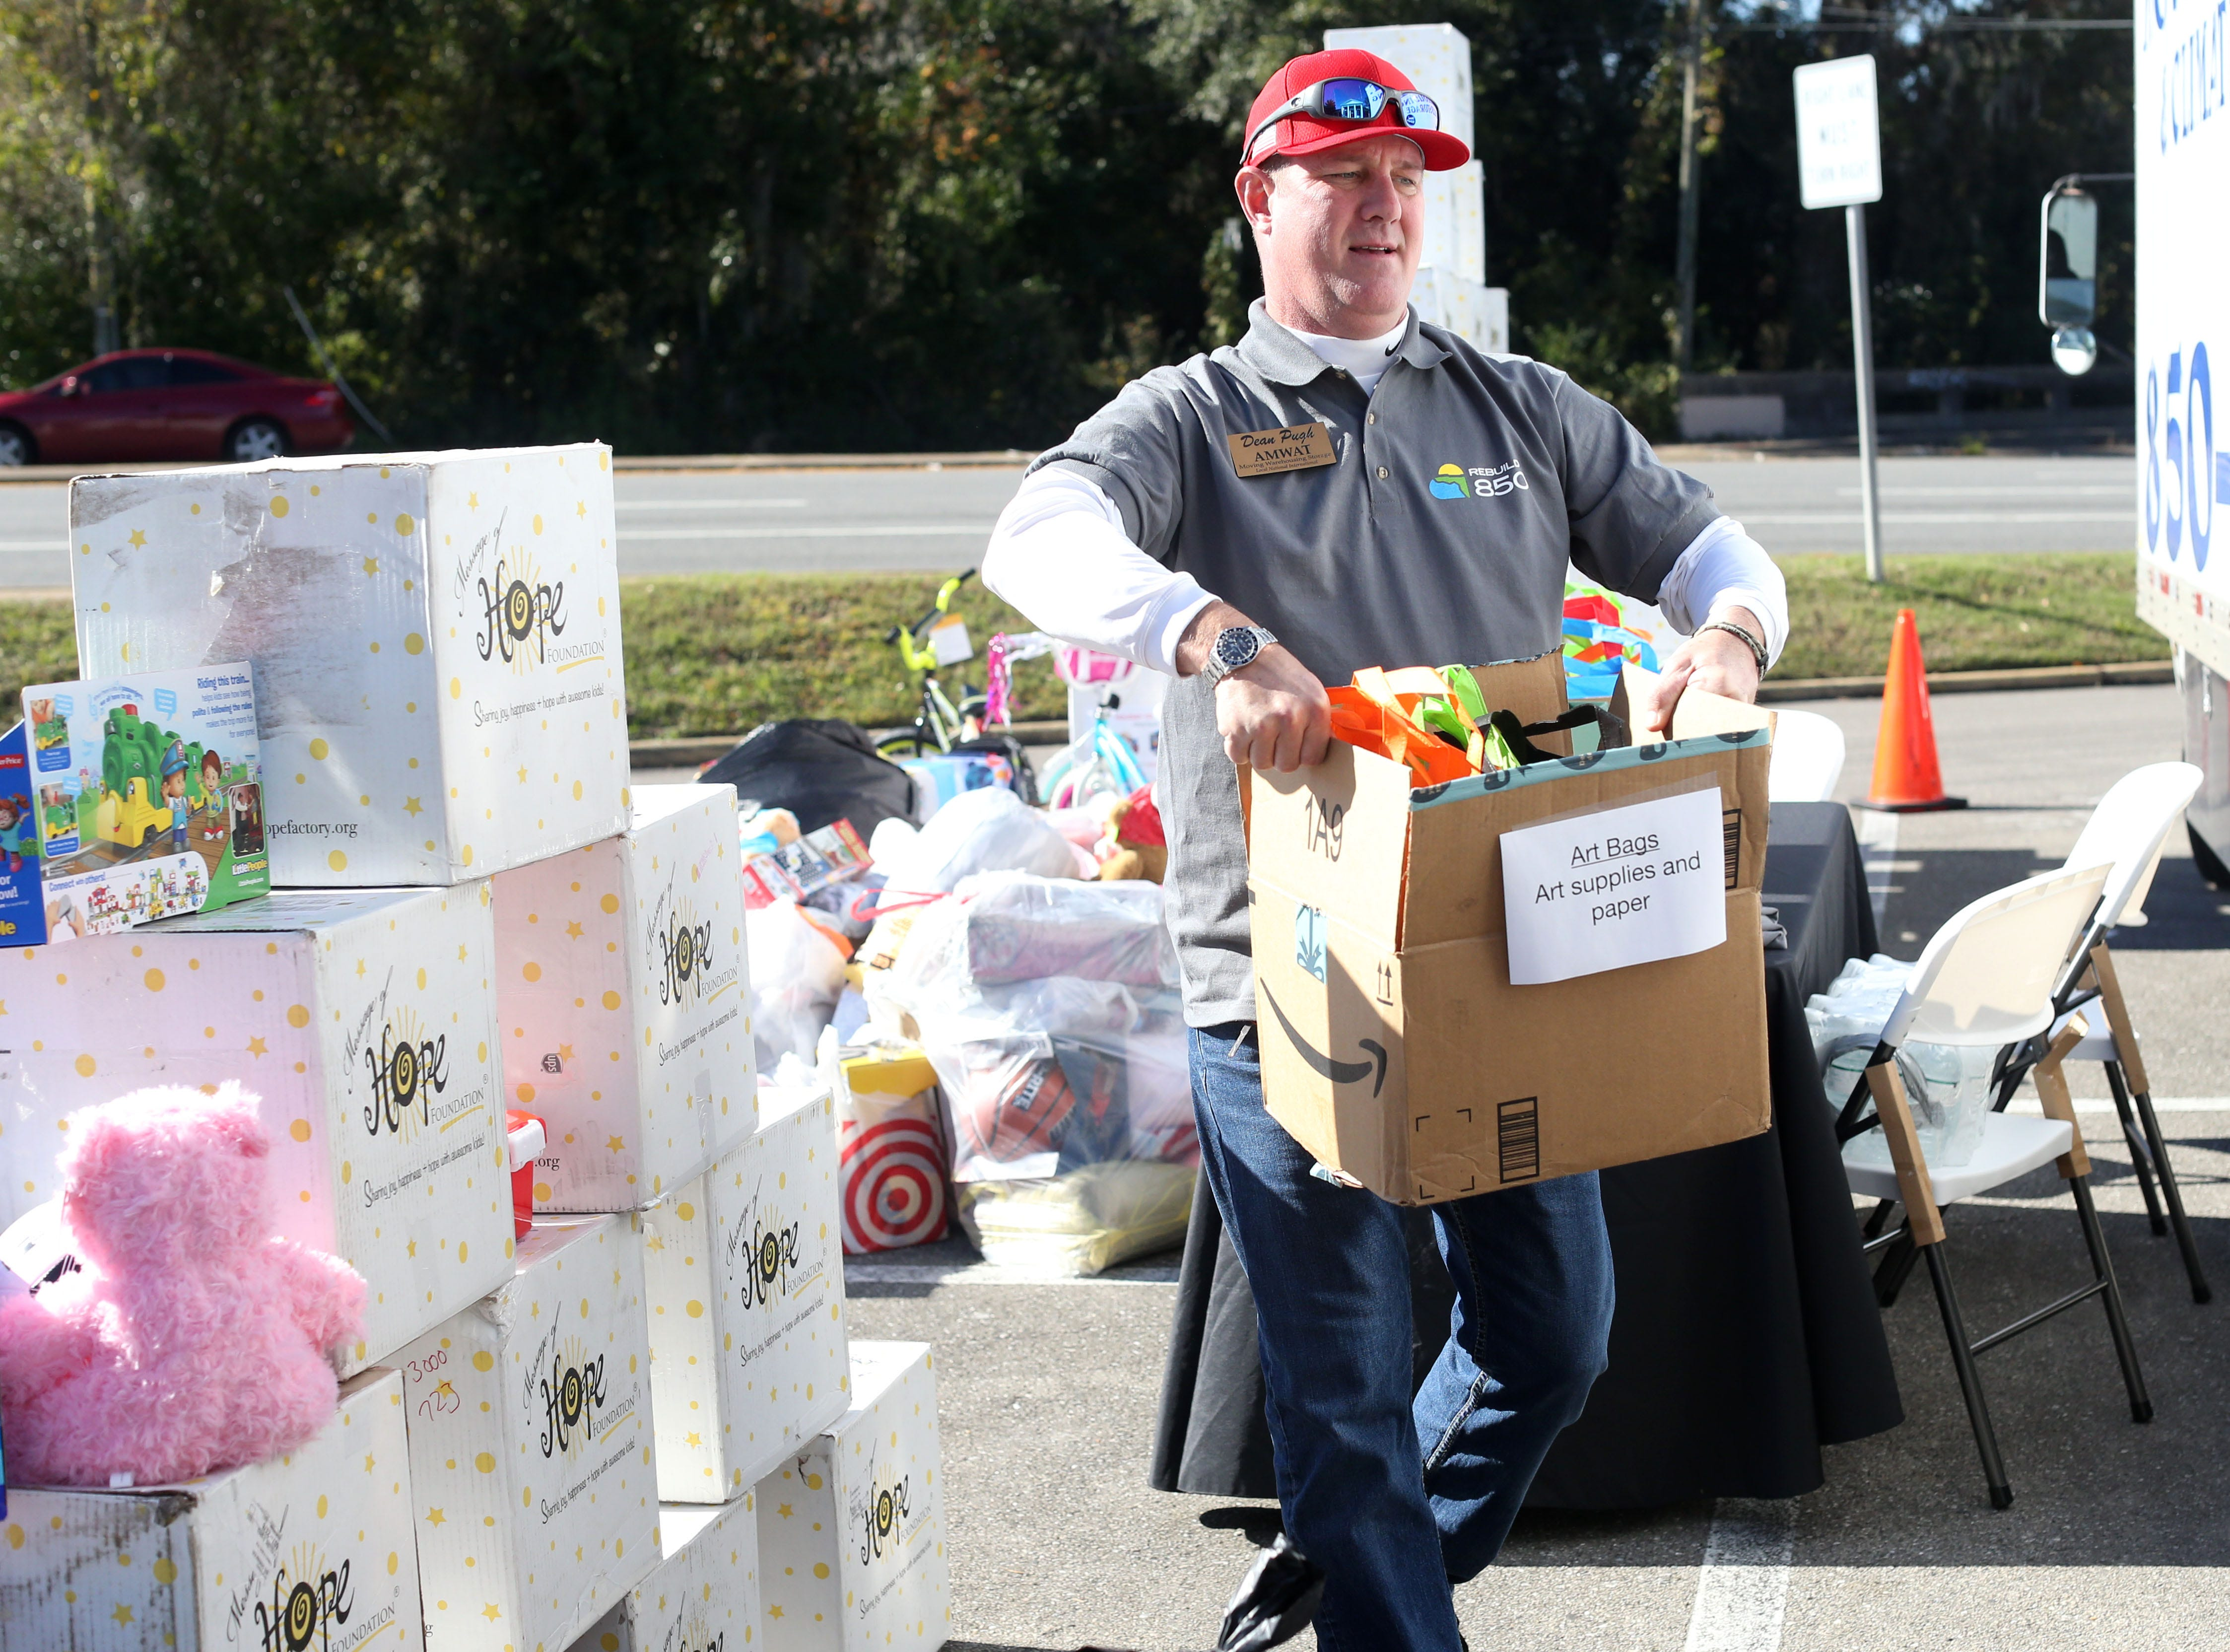 Dean Pugh, owner of A.M.W.A.T. Moving and Warehouse, loads toys into a moving truck for the toy drive for children impacted by Hurricane Michael hosted by Rebuild 850 outside of the Tallahassee Democrat, Thursday, Dec. 6, 2018.